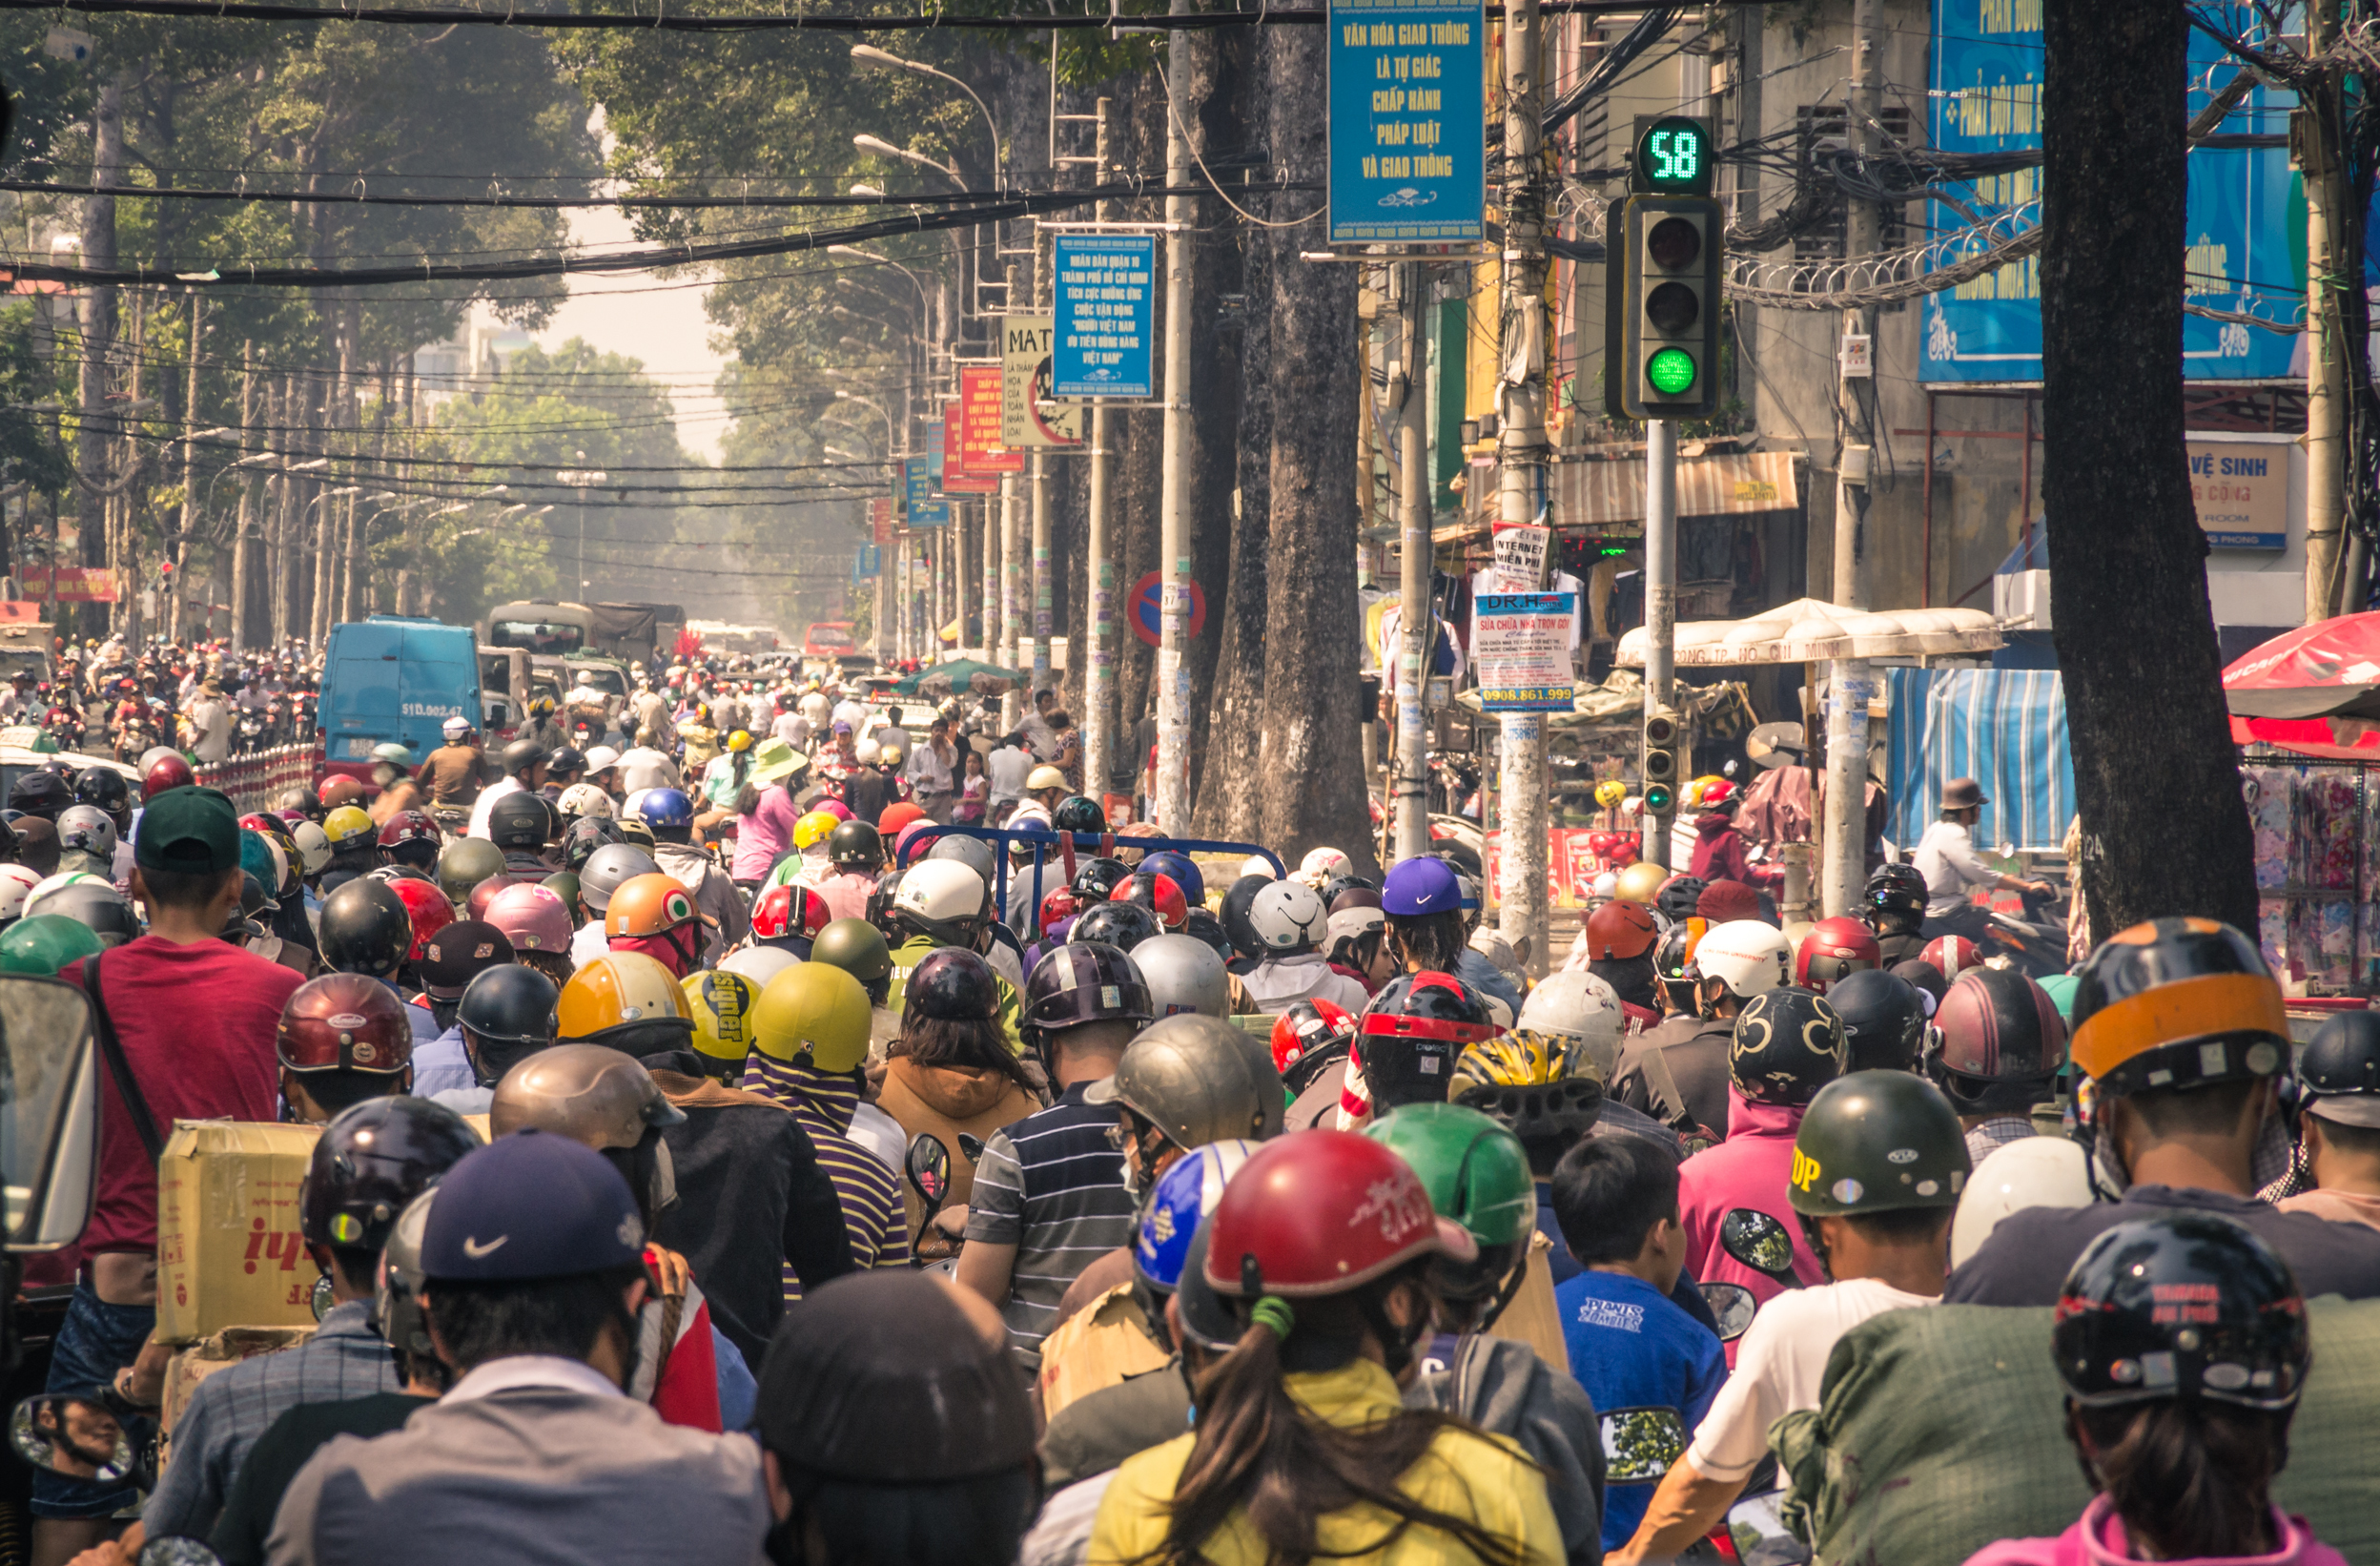 A traffic jam in Saigon, now known as Ho Chi Minh City, Vietnam.